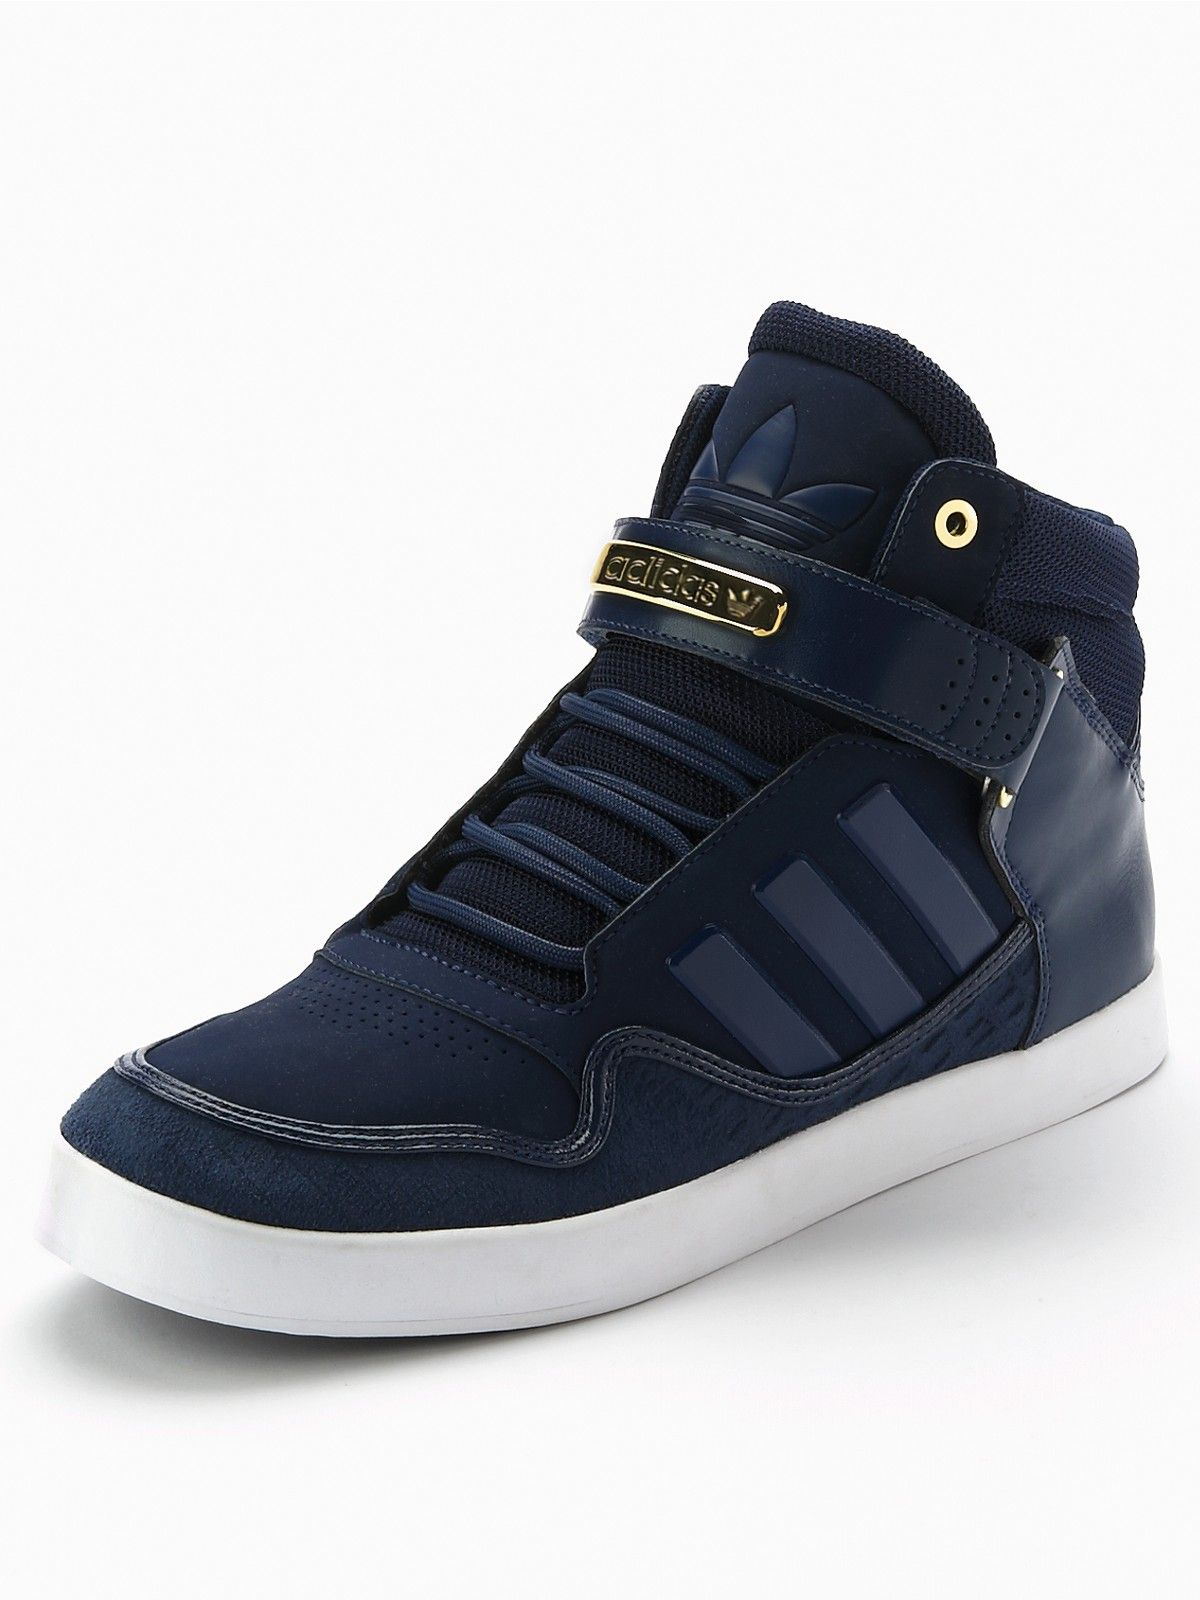 wholesale dealer d318b 0d275 Adidas Originals AdiRise 2.0 Hi Top